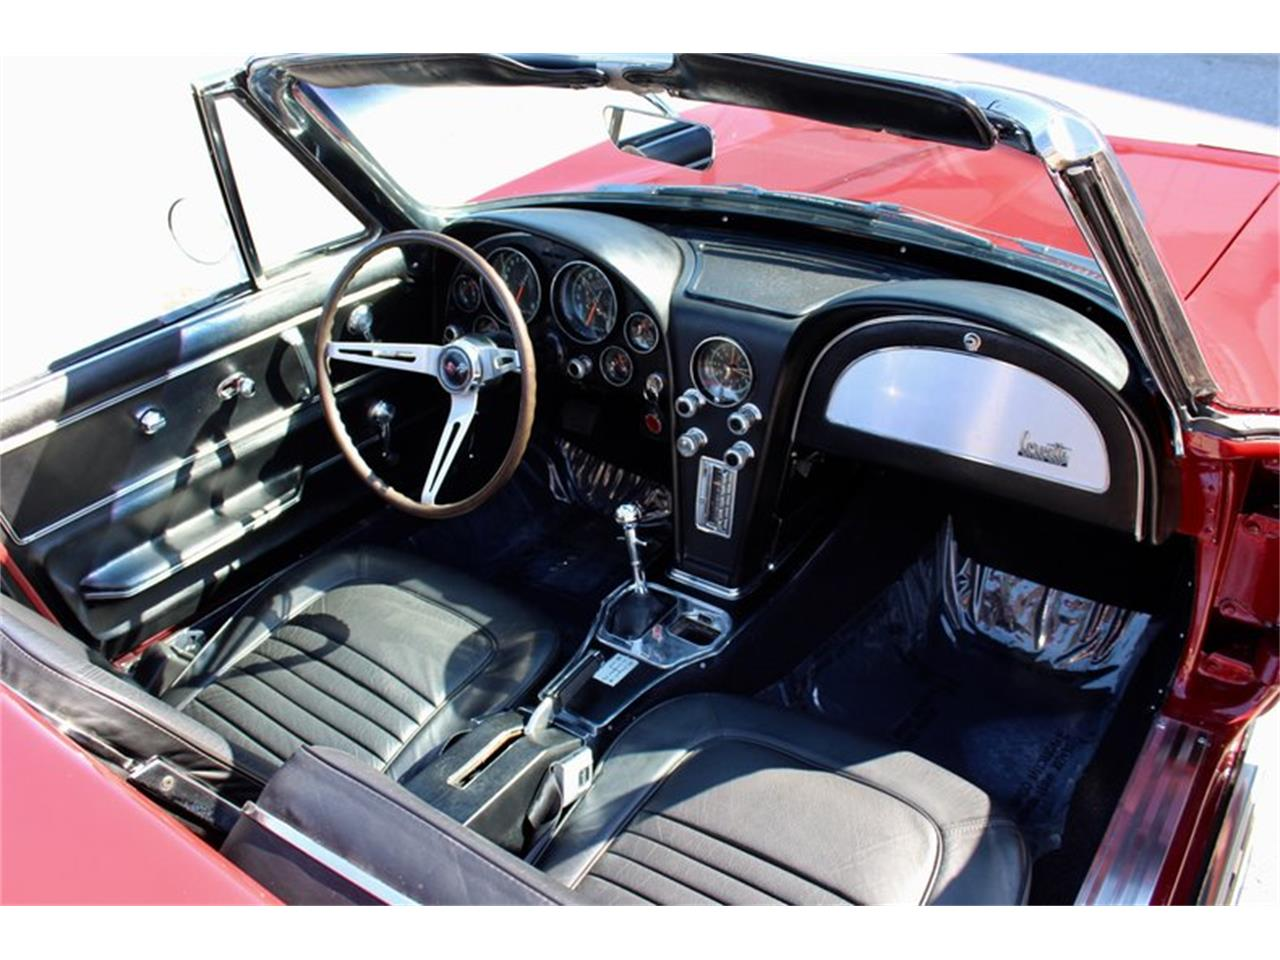 Large Picture of Classic '67 Chevrolet Corvette Stingray located in Florida Offered by Classic Cars of Sarasota - PVTL